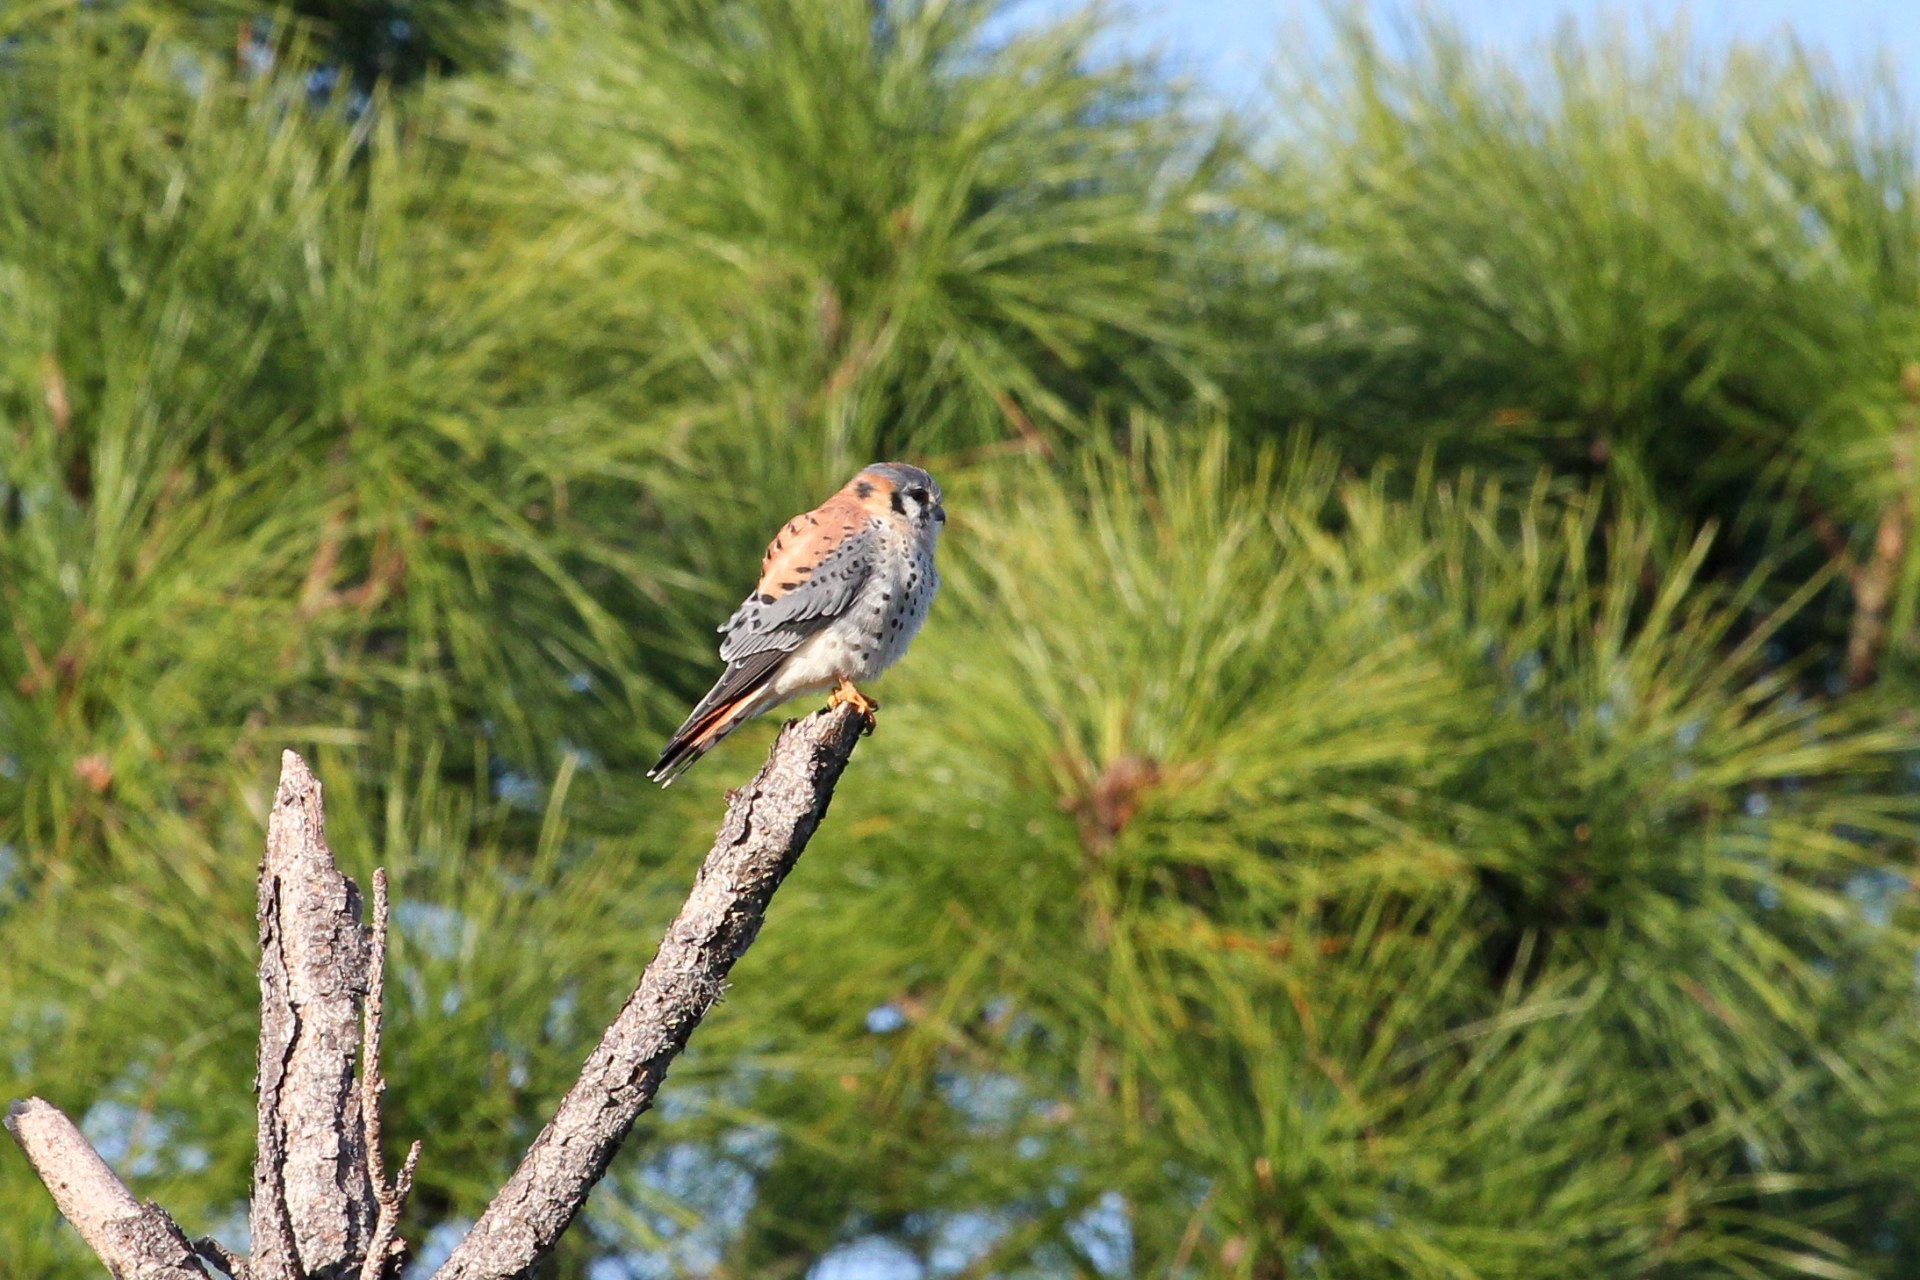 American Kestral (Sparrow hawk), Cedar Point Environmental Park, Englewood